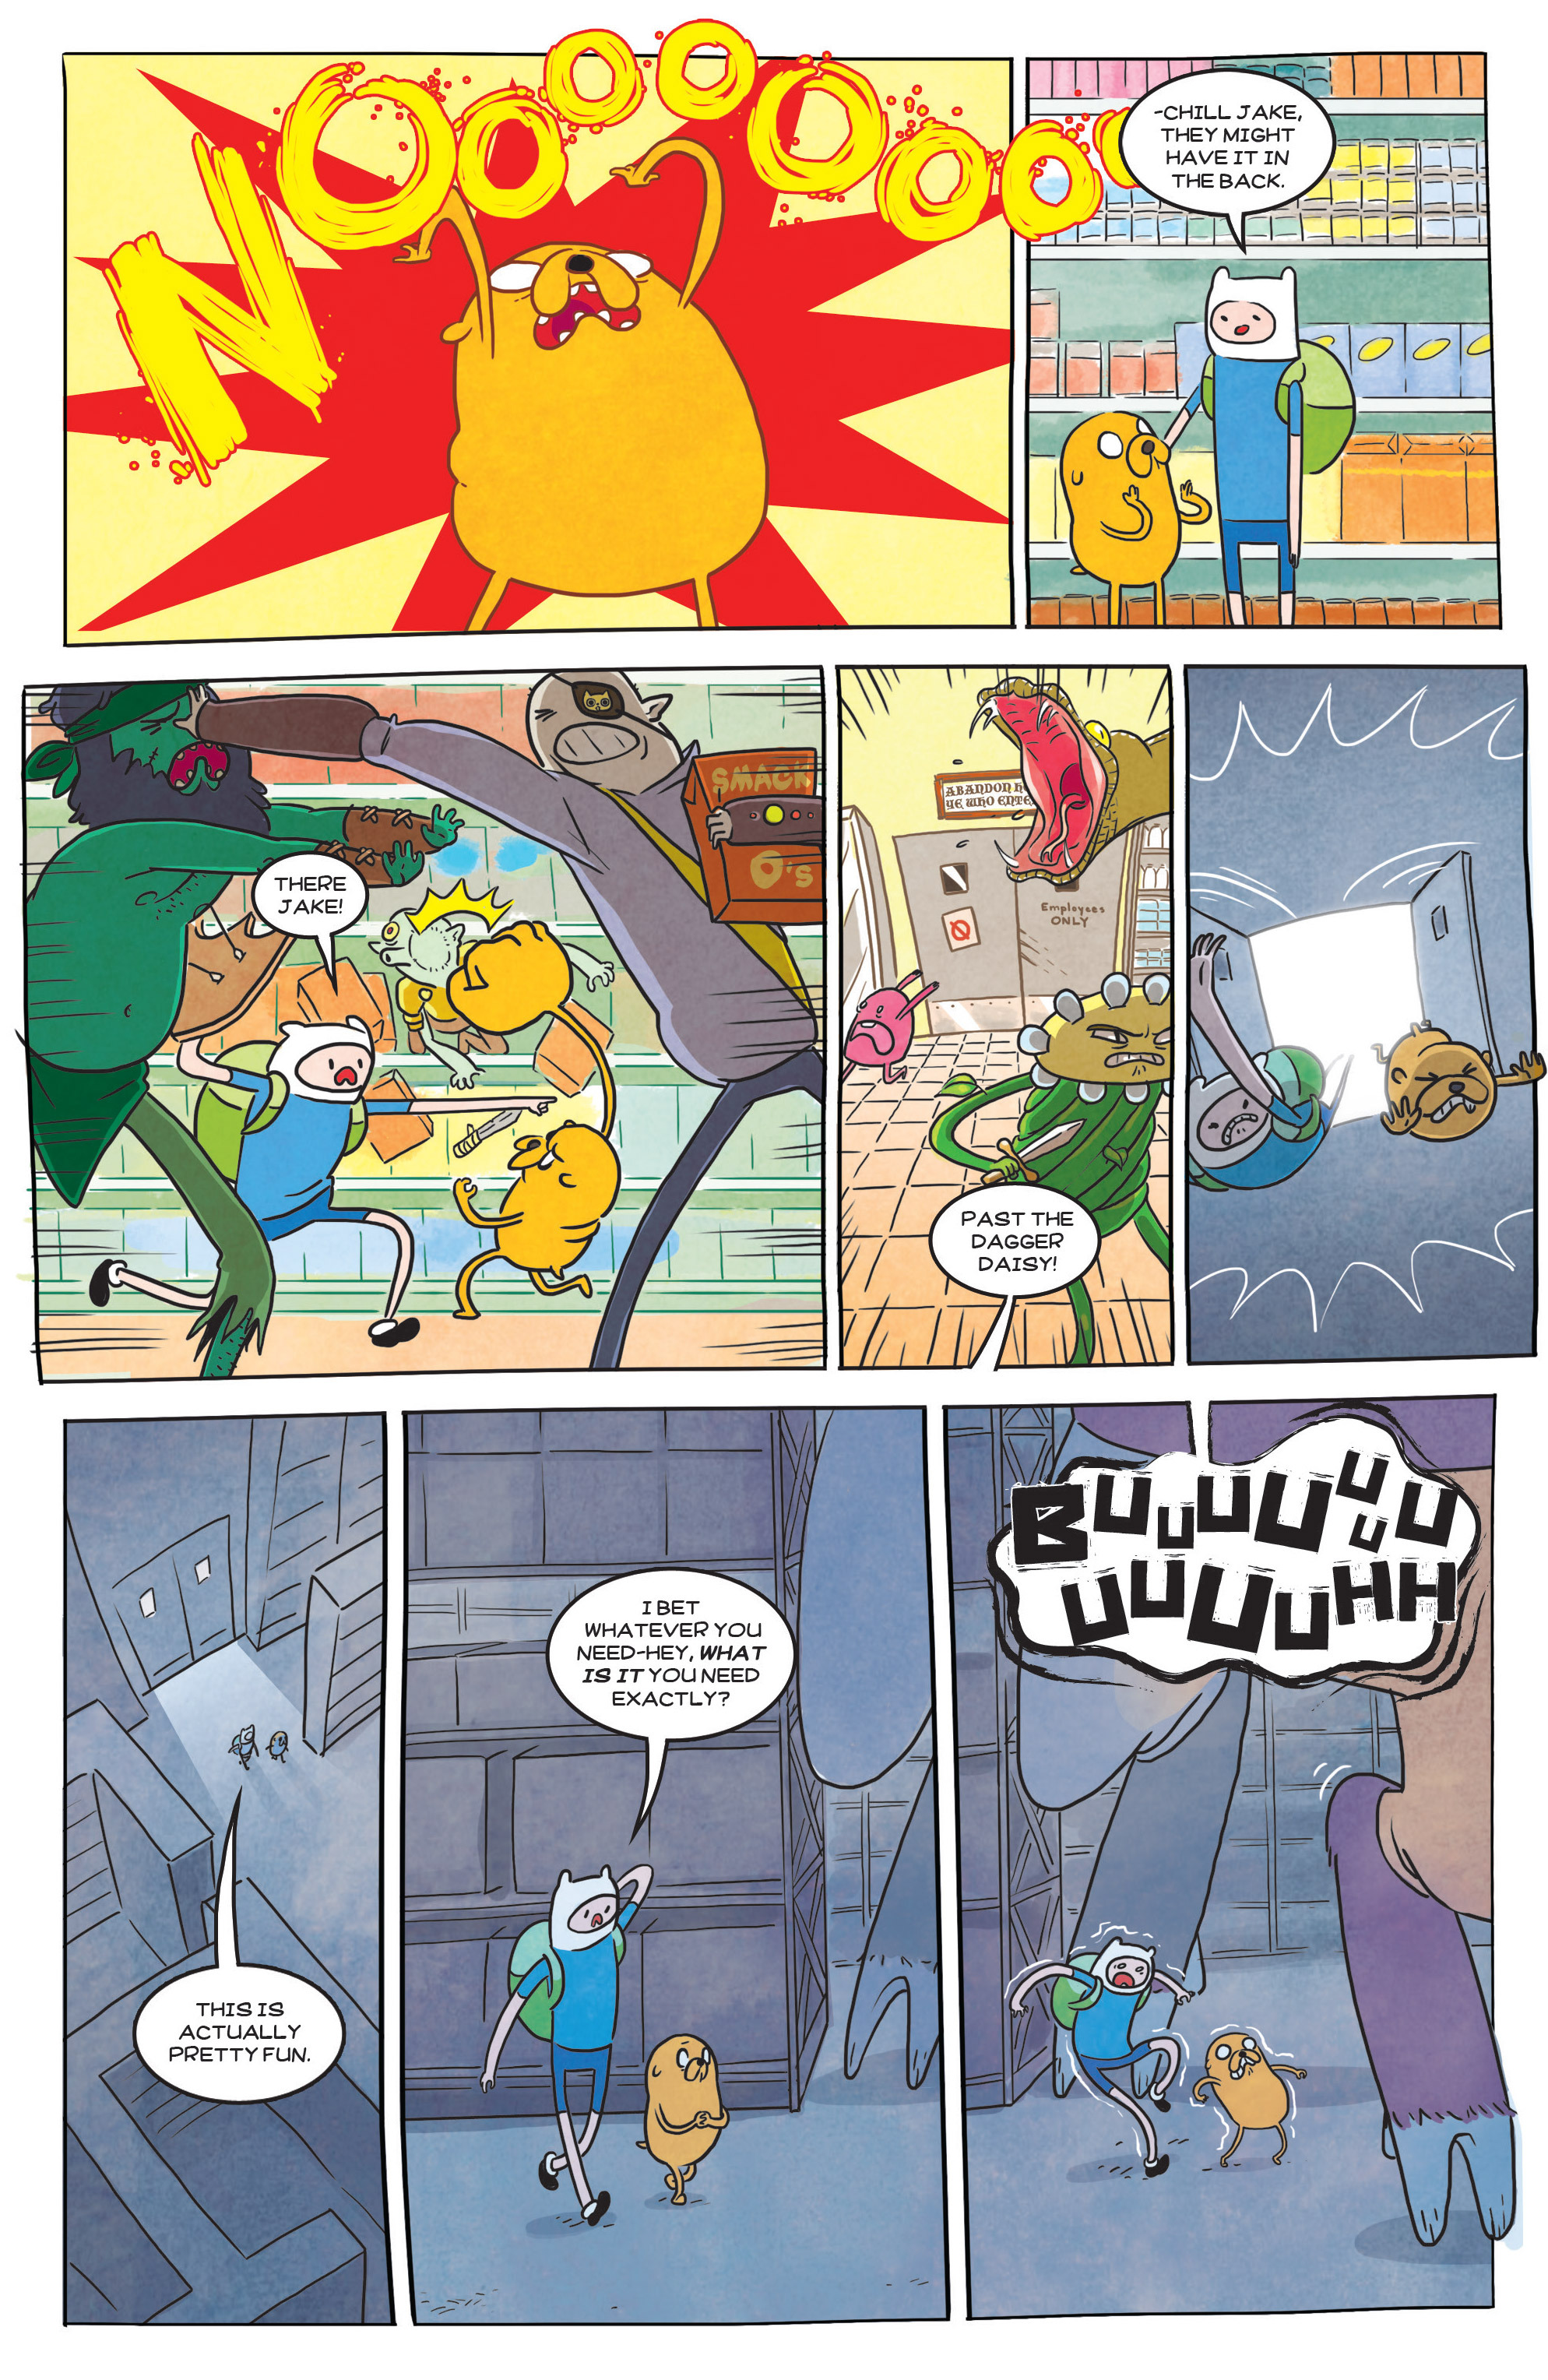 Read online Adventure Time comic -  Issue #39 - 22